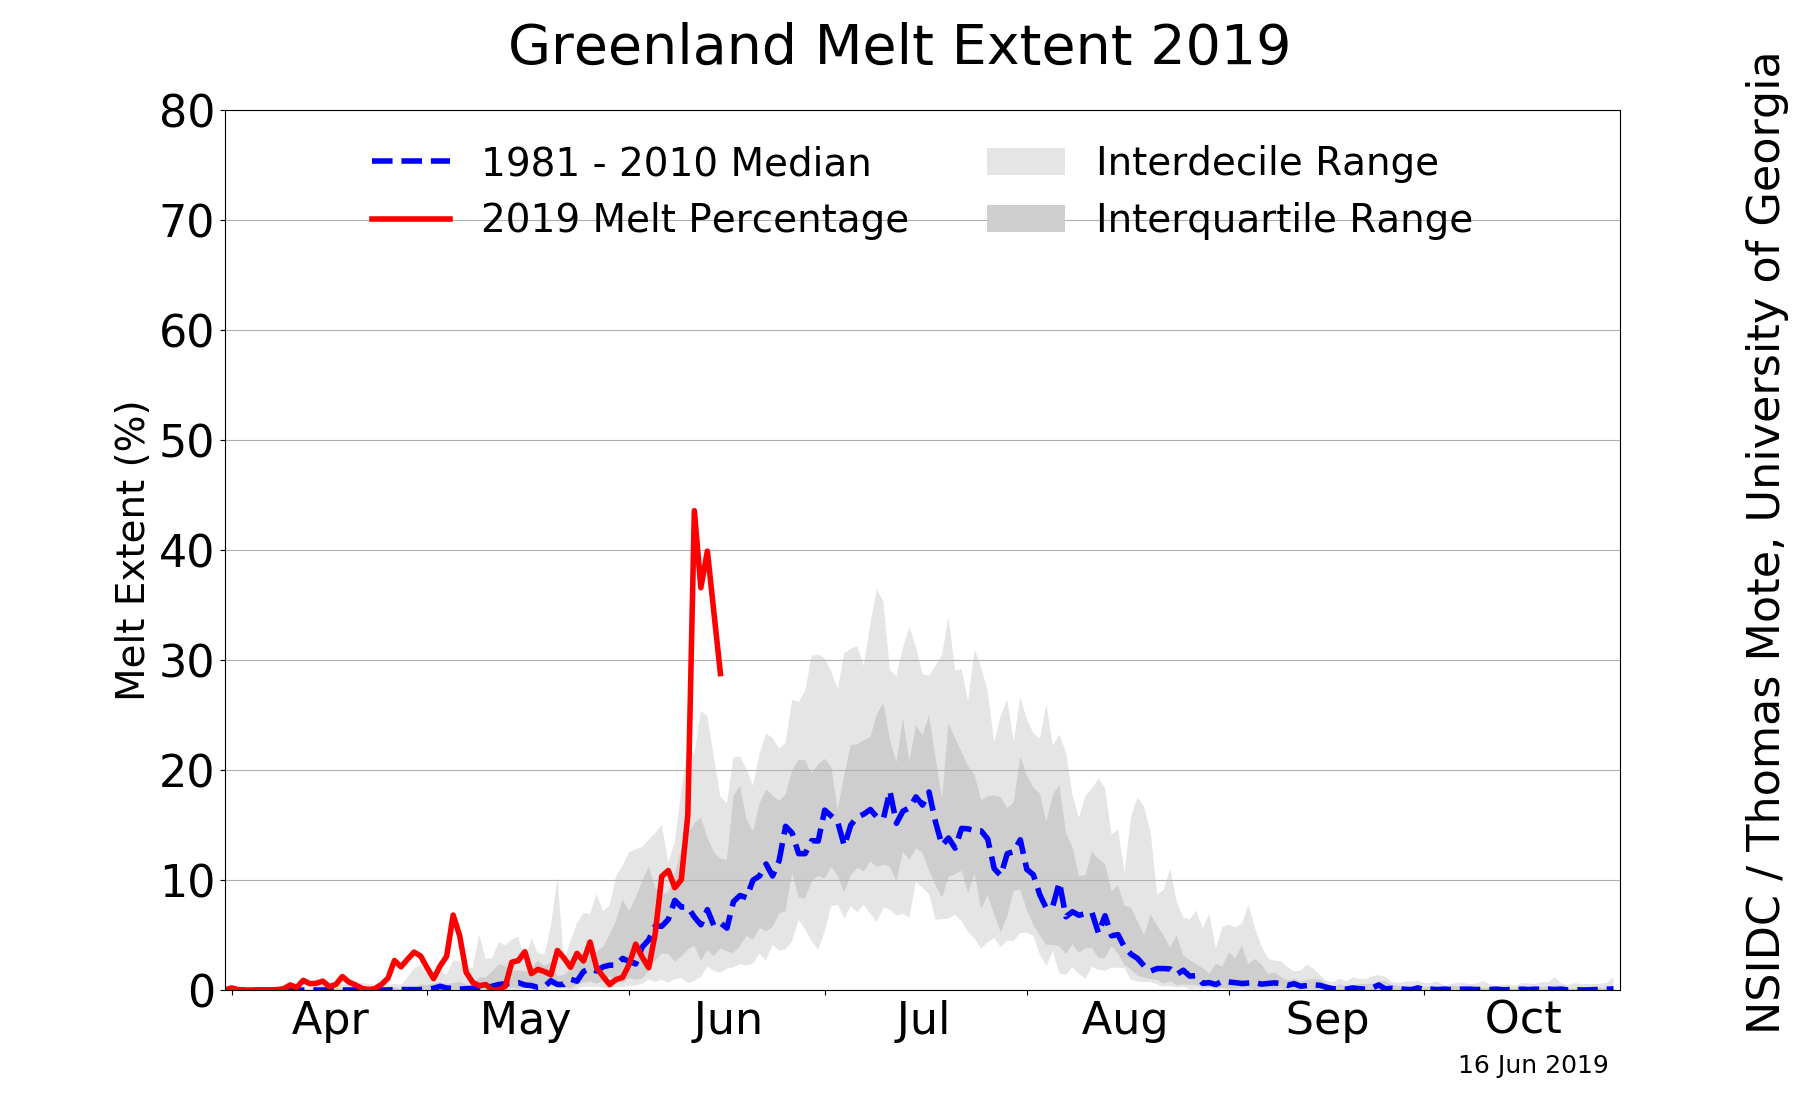 Den raude streken viser prosentandelen smeltande overflateis i år, satt oppimot den blå streken som er medianen for perioden 1981-2010. (Graf: National Snow and Ice Data Center, https://nsidc.org/greenland-today/ )